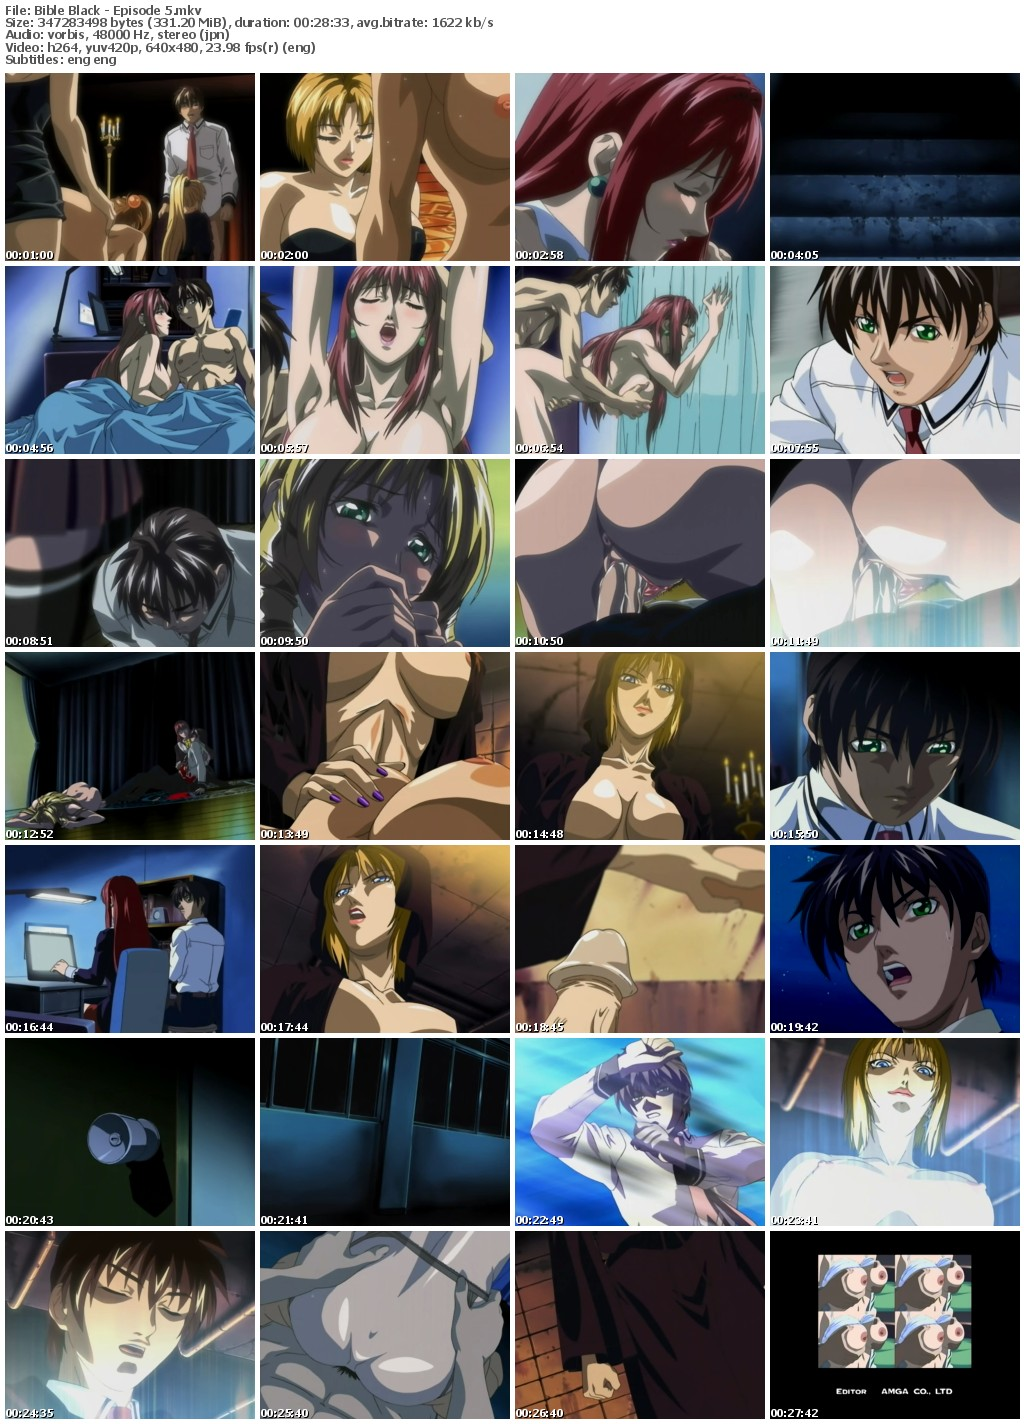 4 adult bible black film